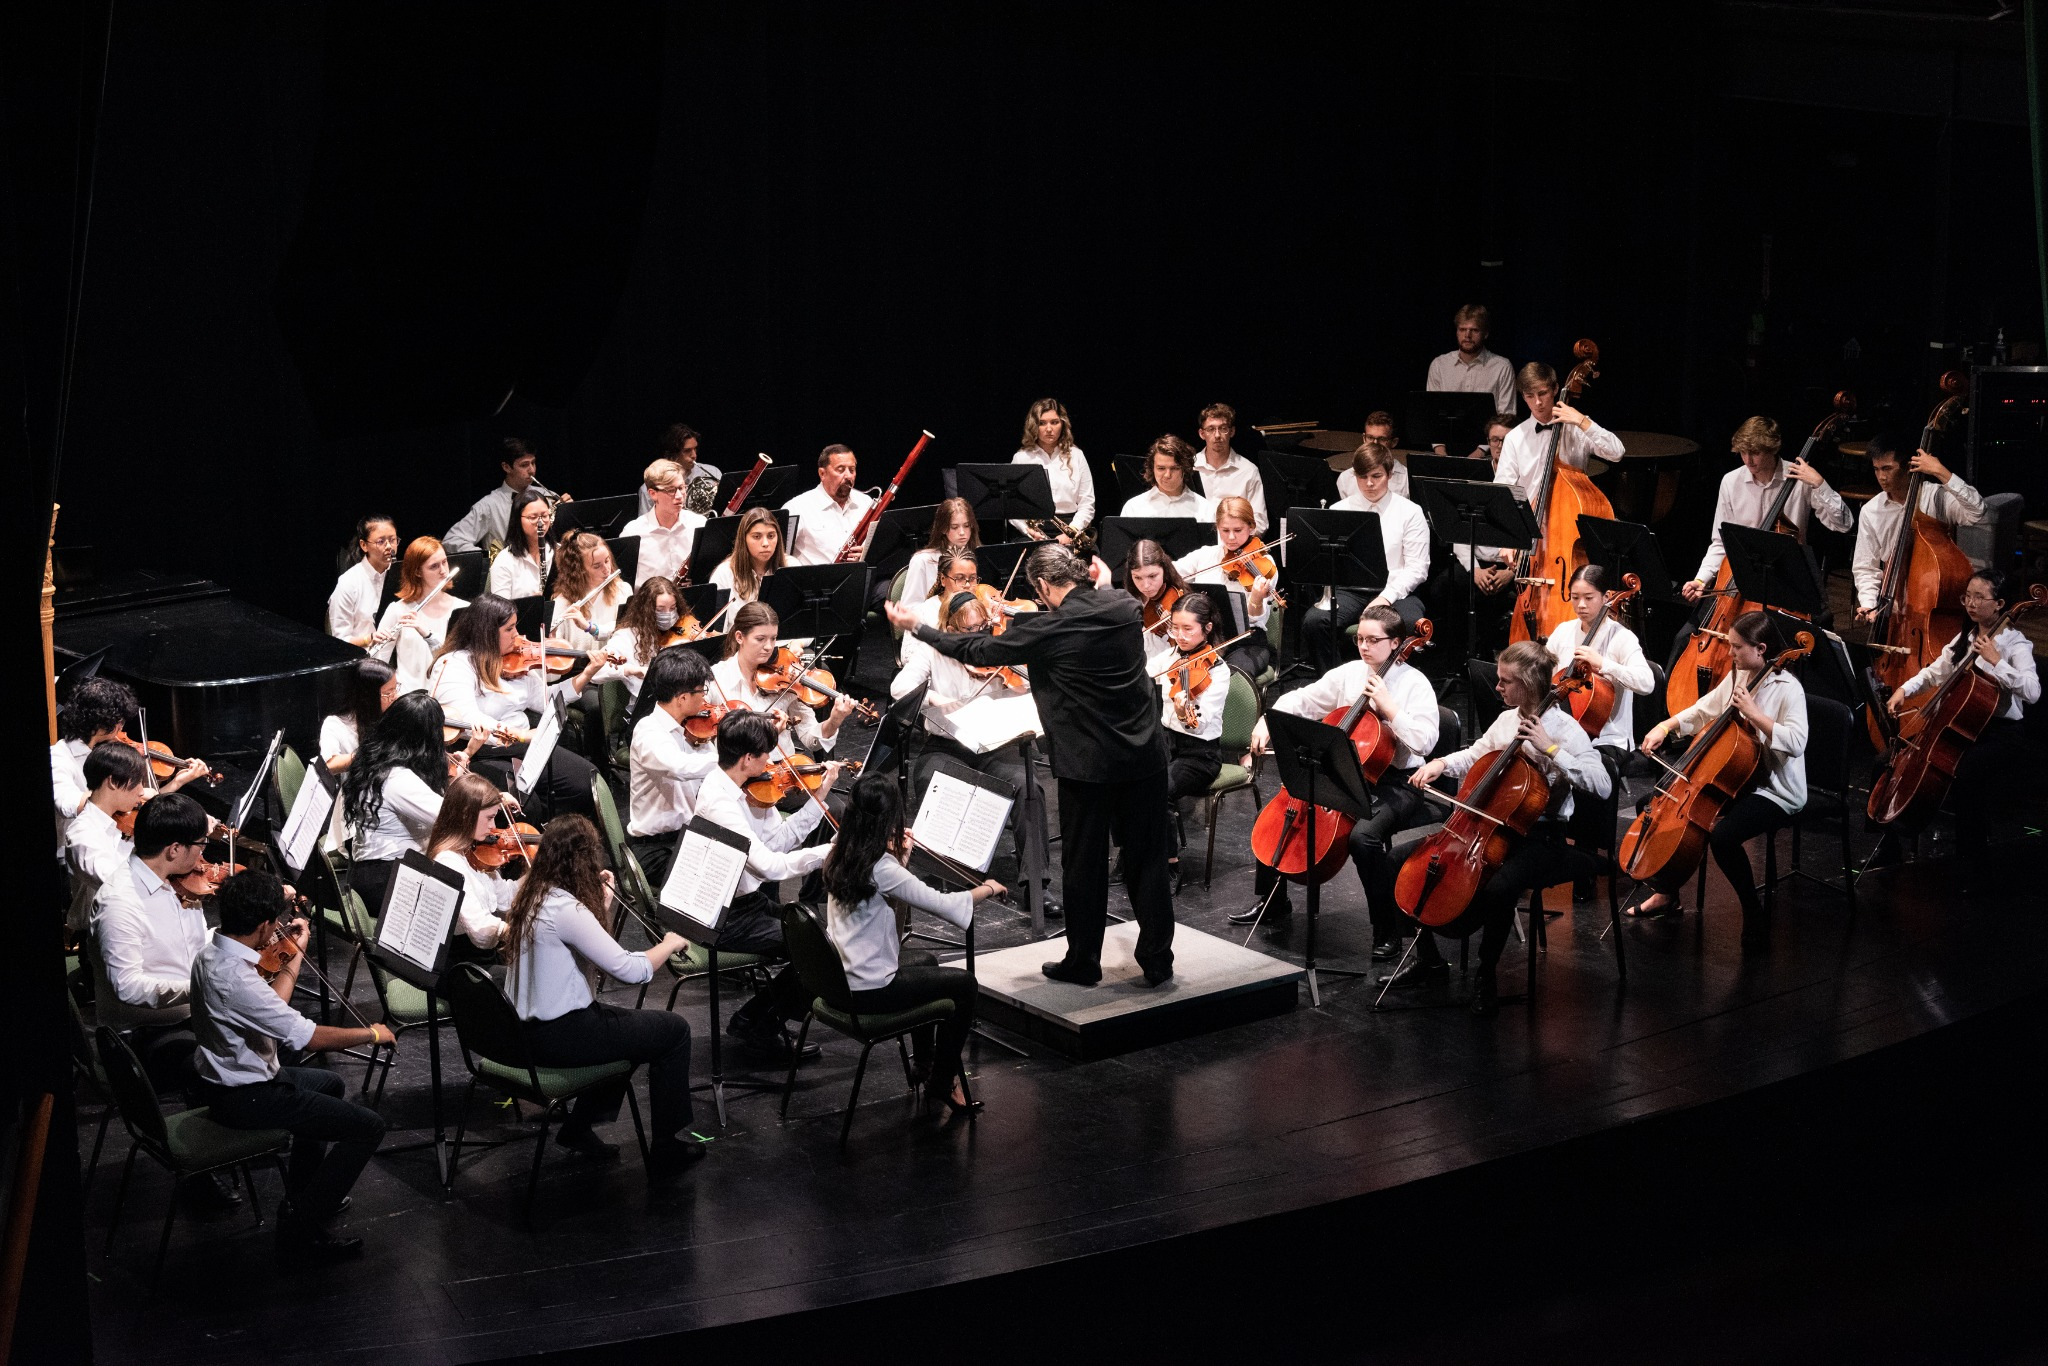 OSAI 2021 Institute Orchestra Performance (Video)